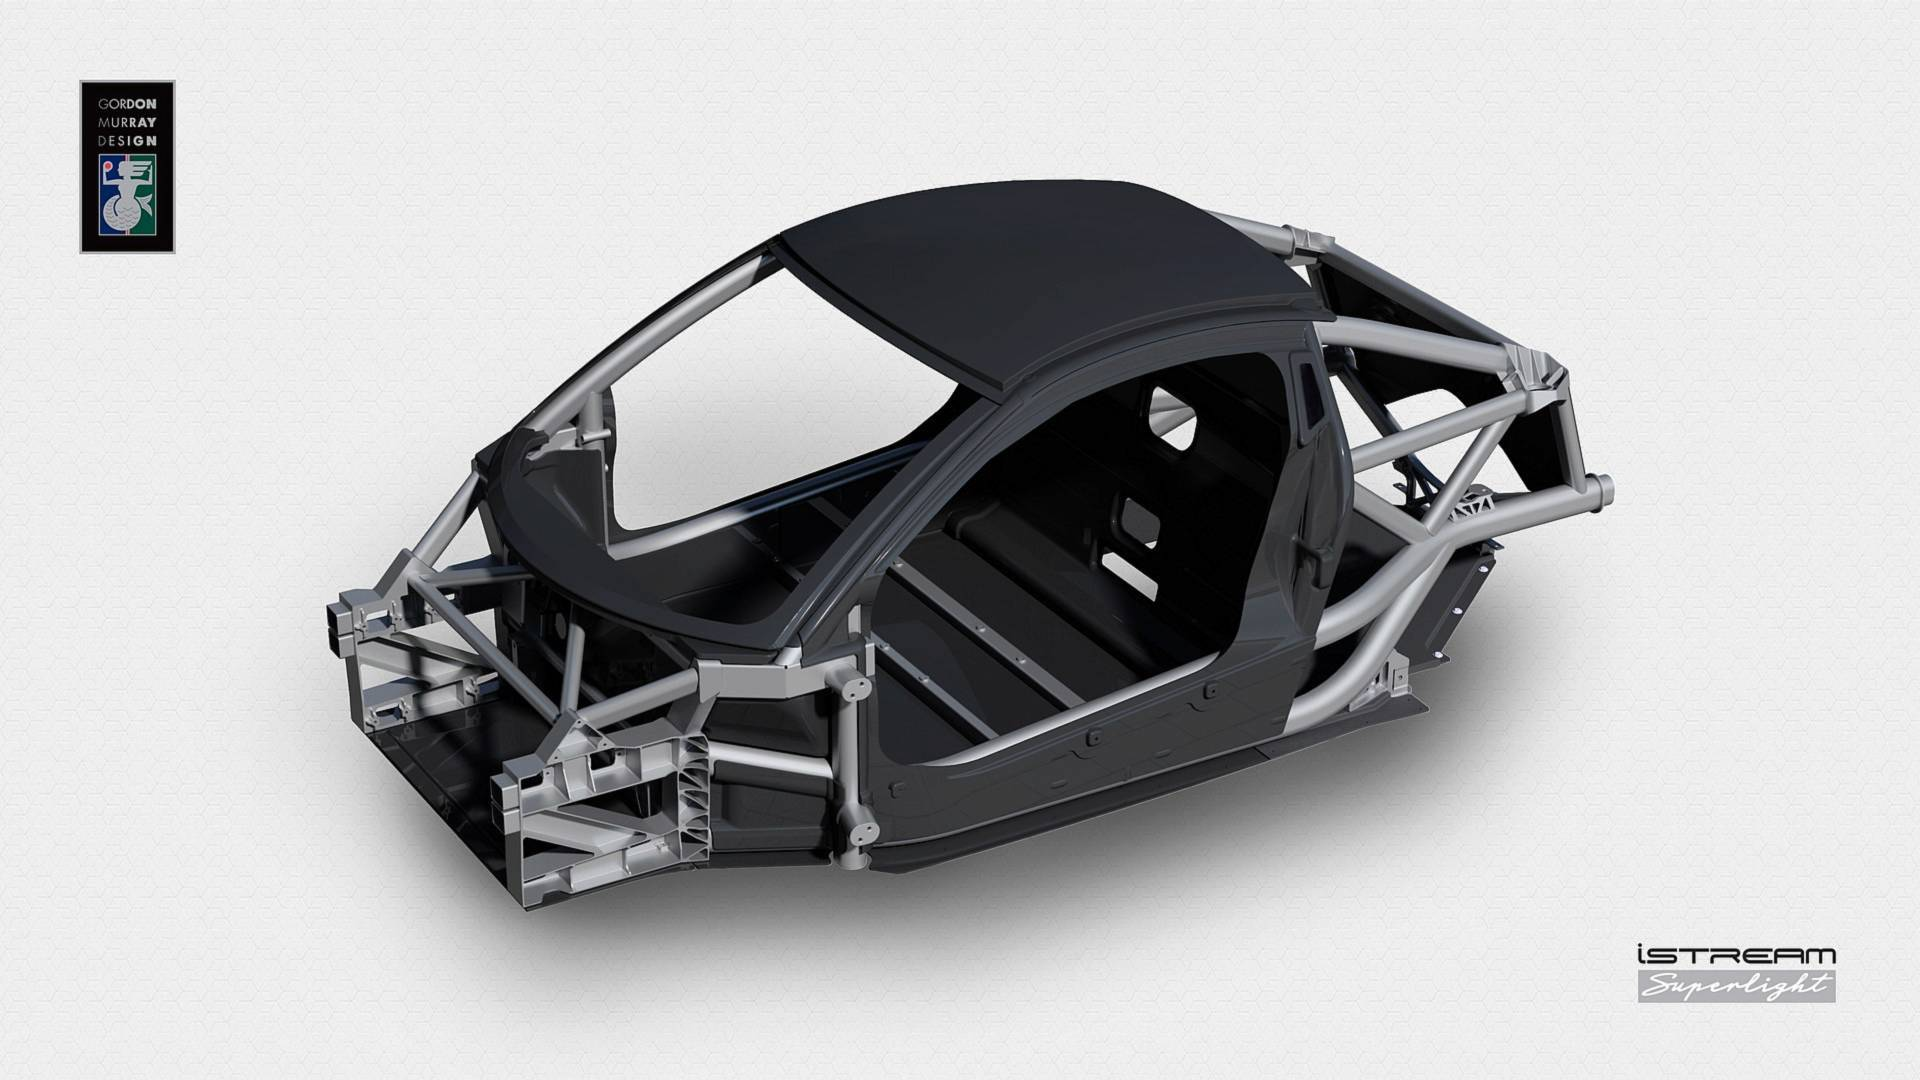 gordon murray design t.43 technical specifications announced